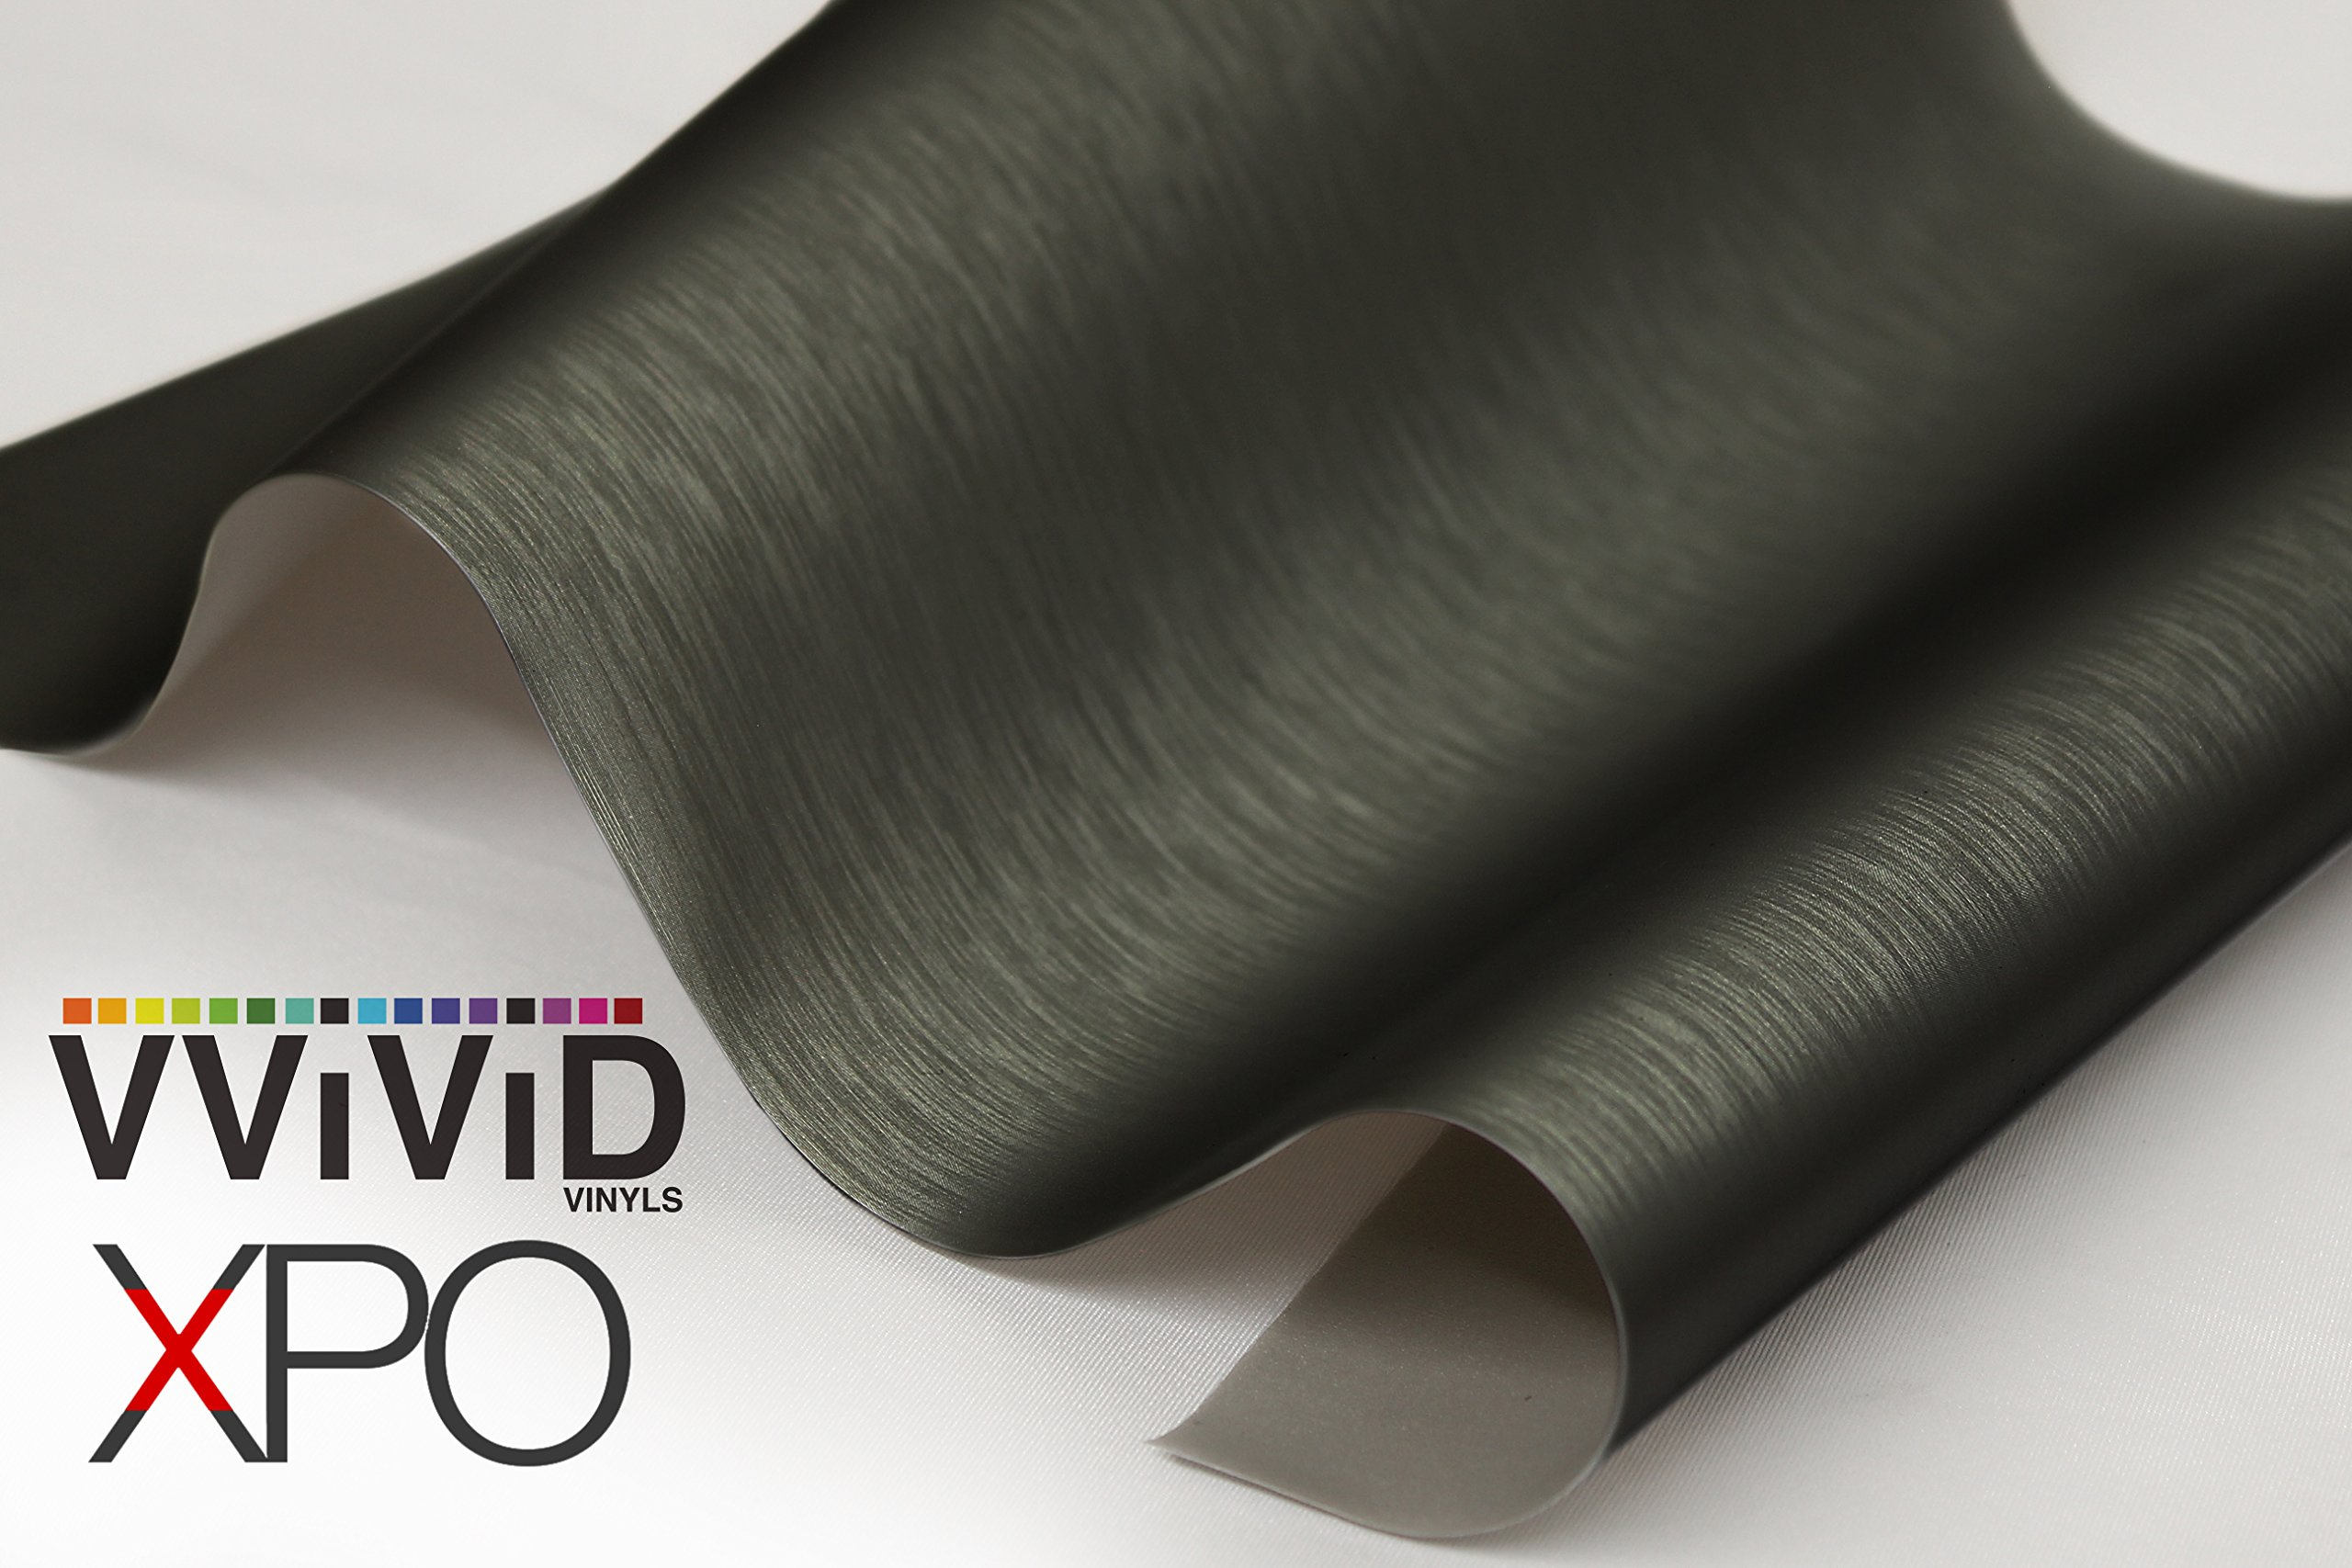 VViViD Black Brushed Steel Vinyl Wrap Roll with Air Release Technology (20ft x 5ft)